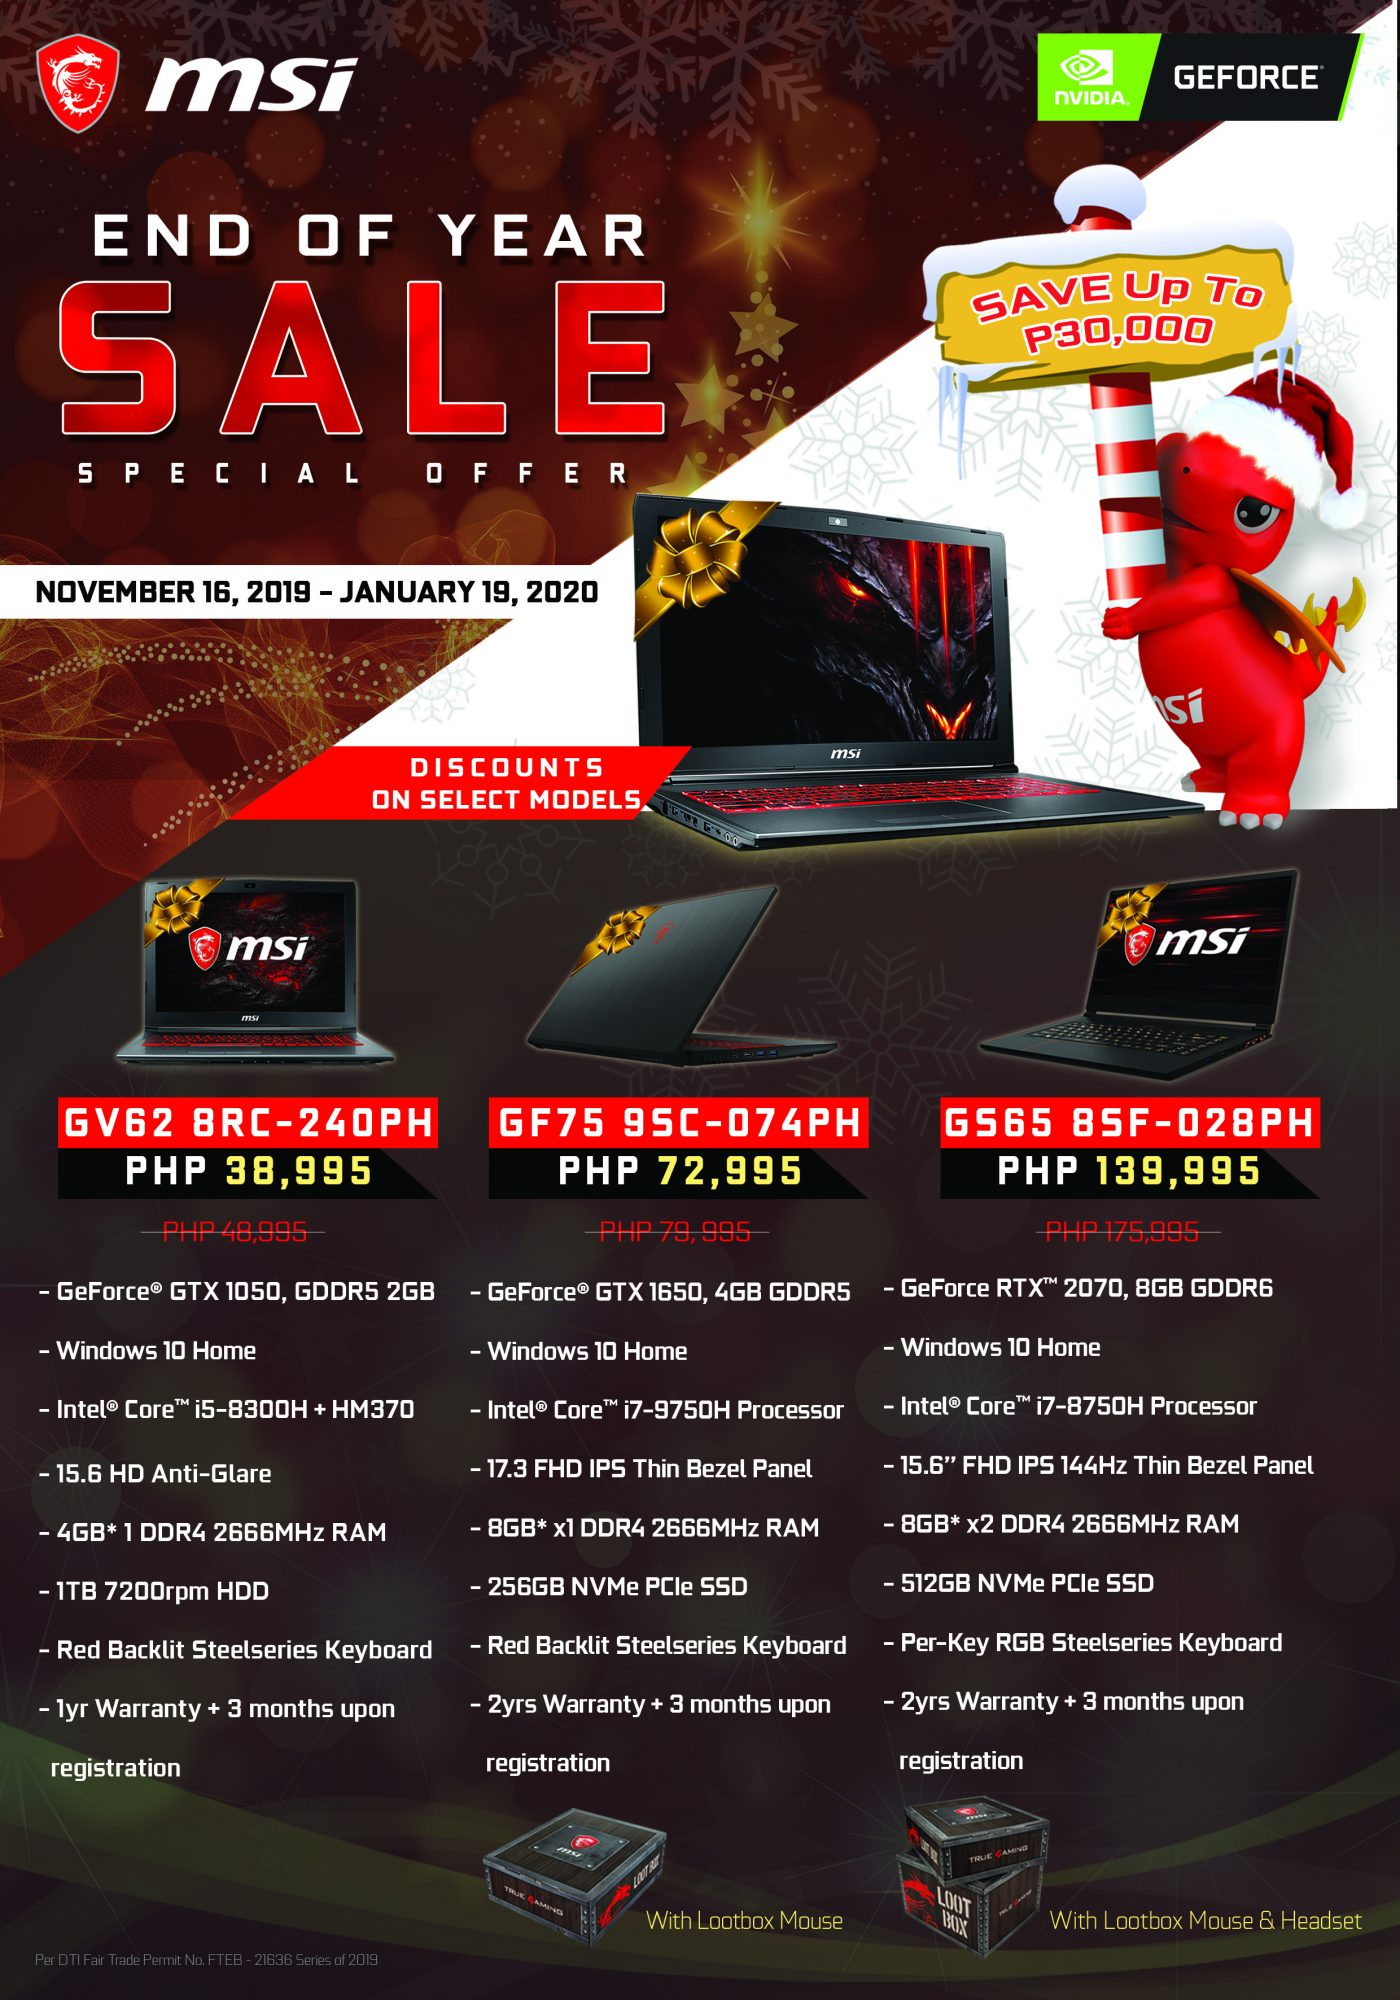 MSI End of Year Sale Promo